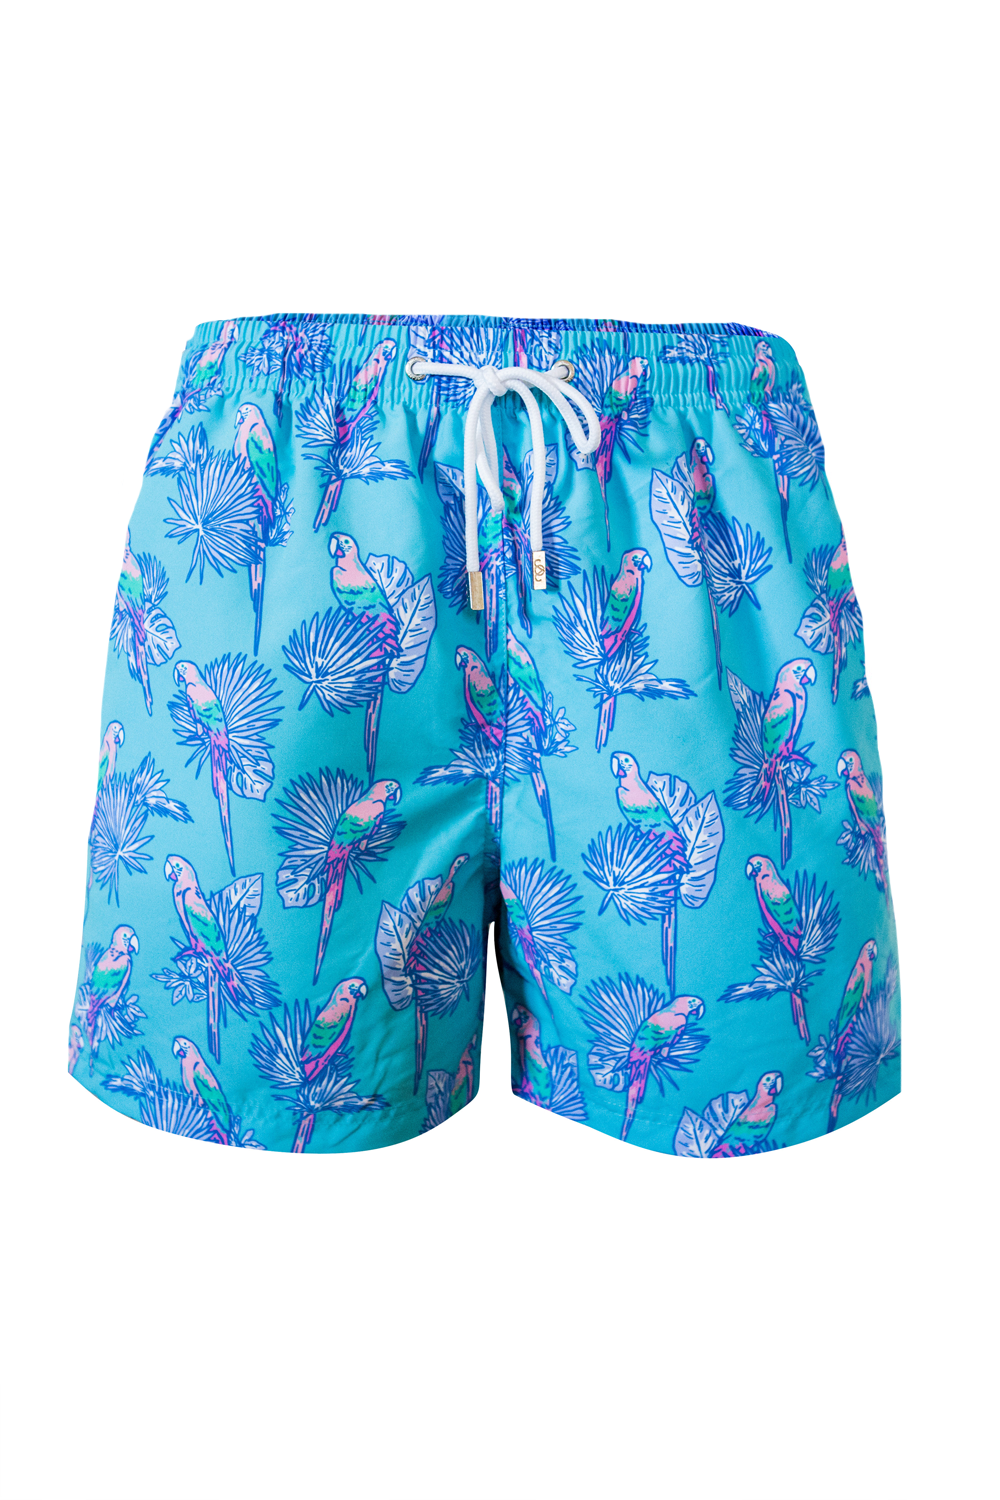 The Pedro Parrot Blue Swim Short